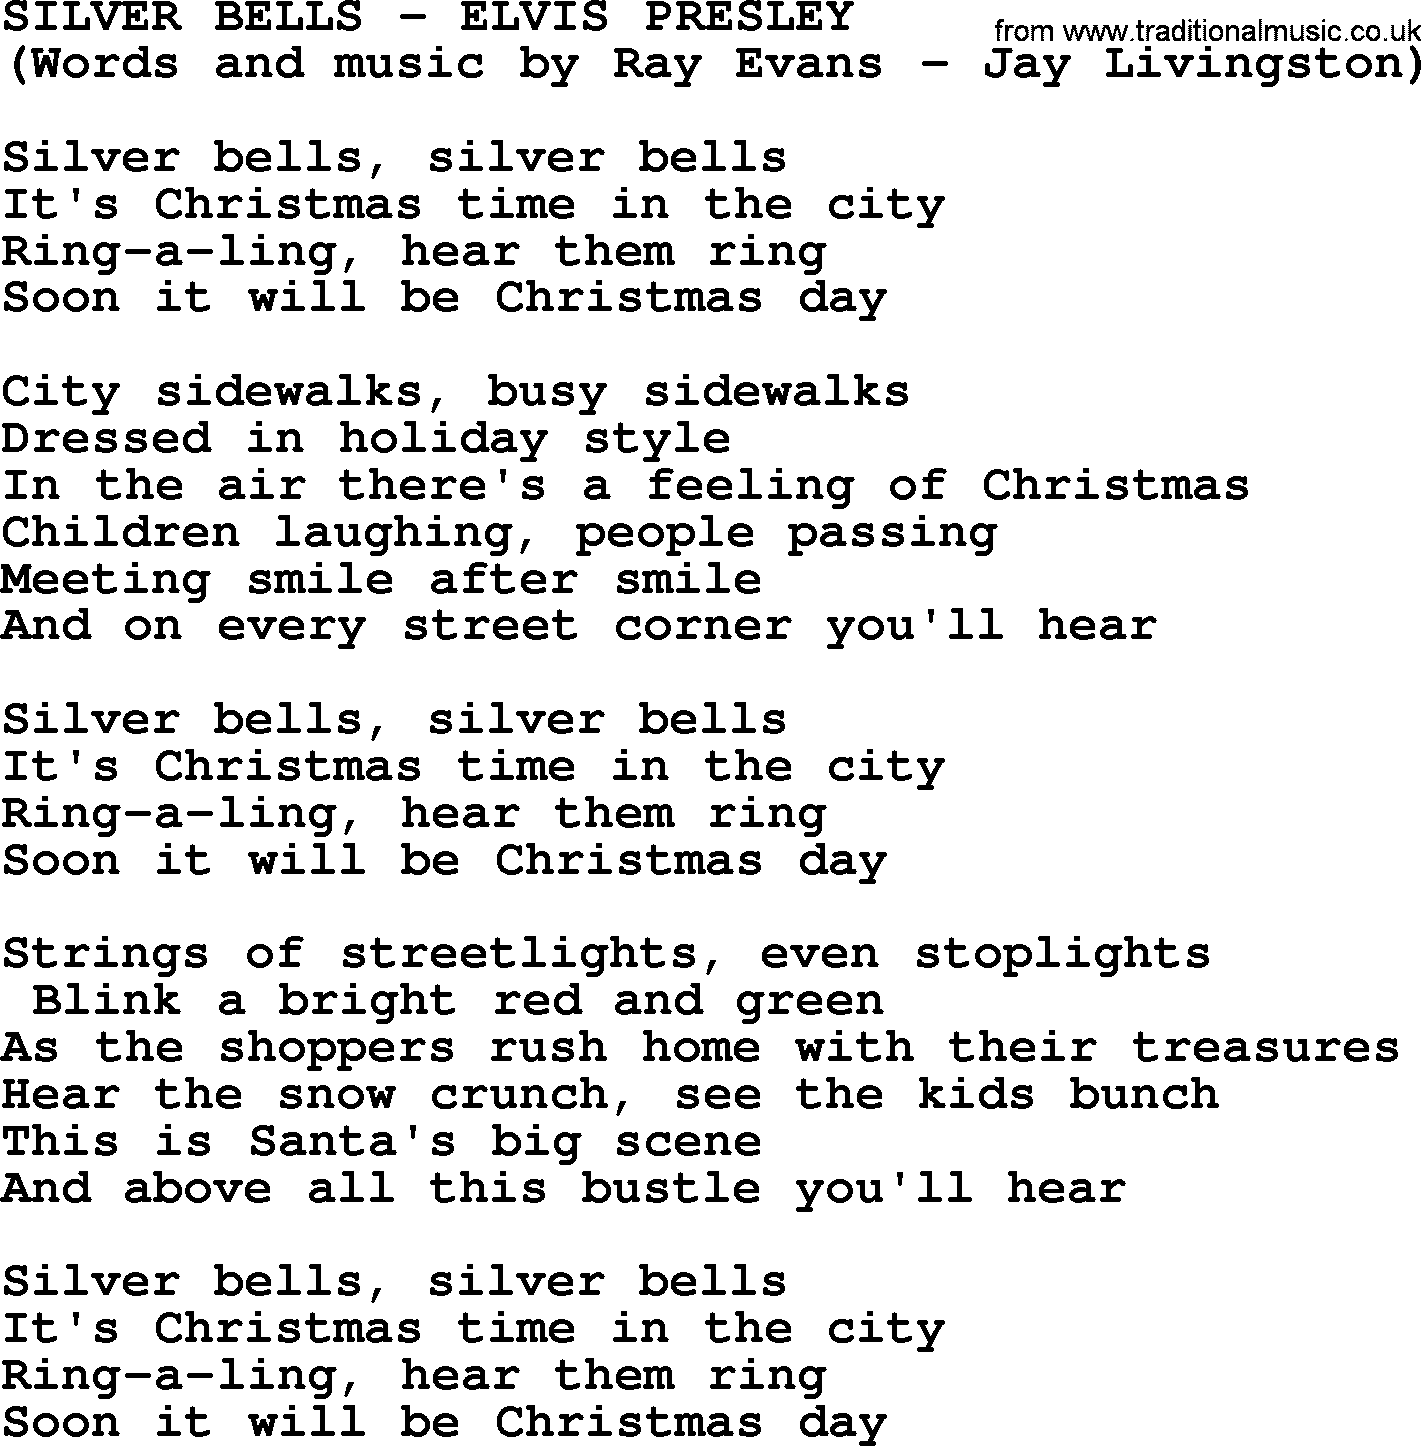 Silver Bells by Elvis Presley - lyrics